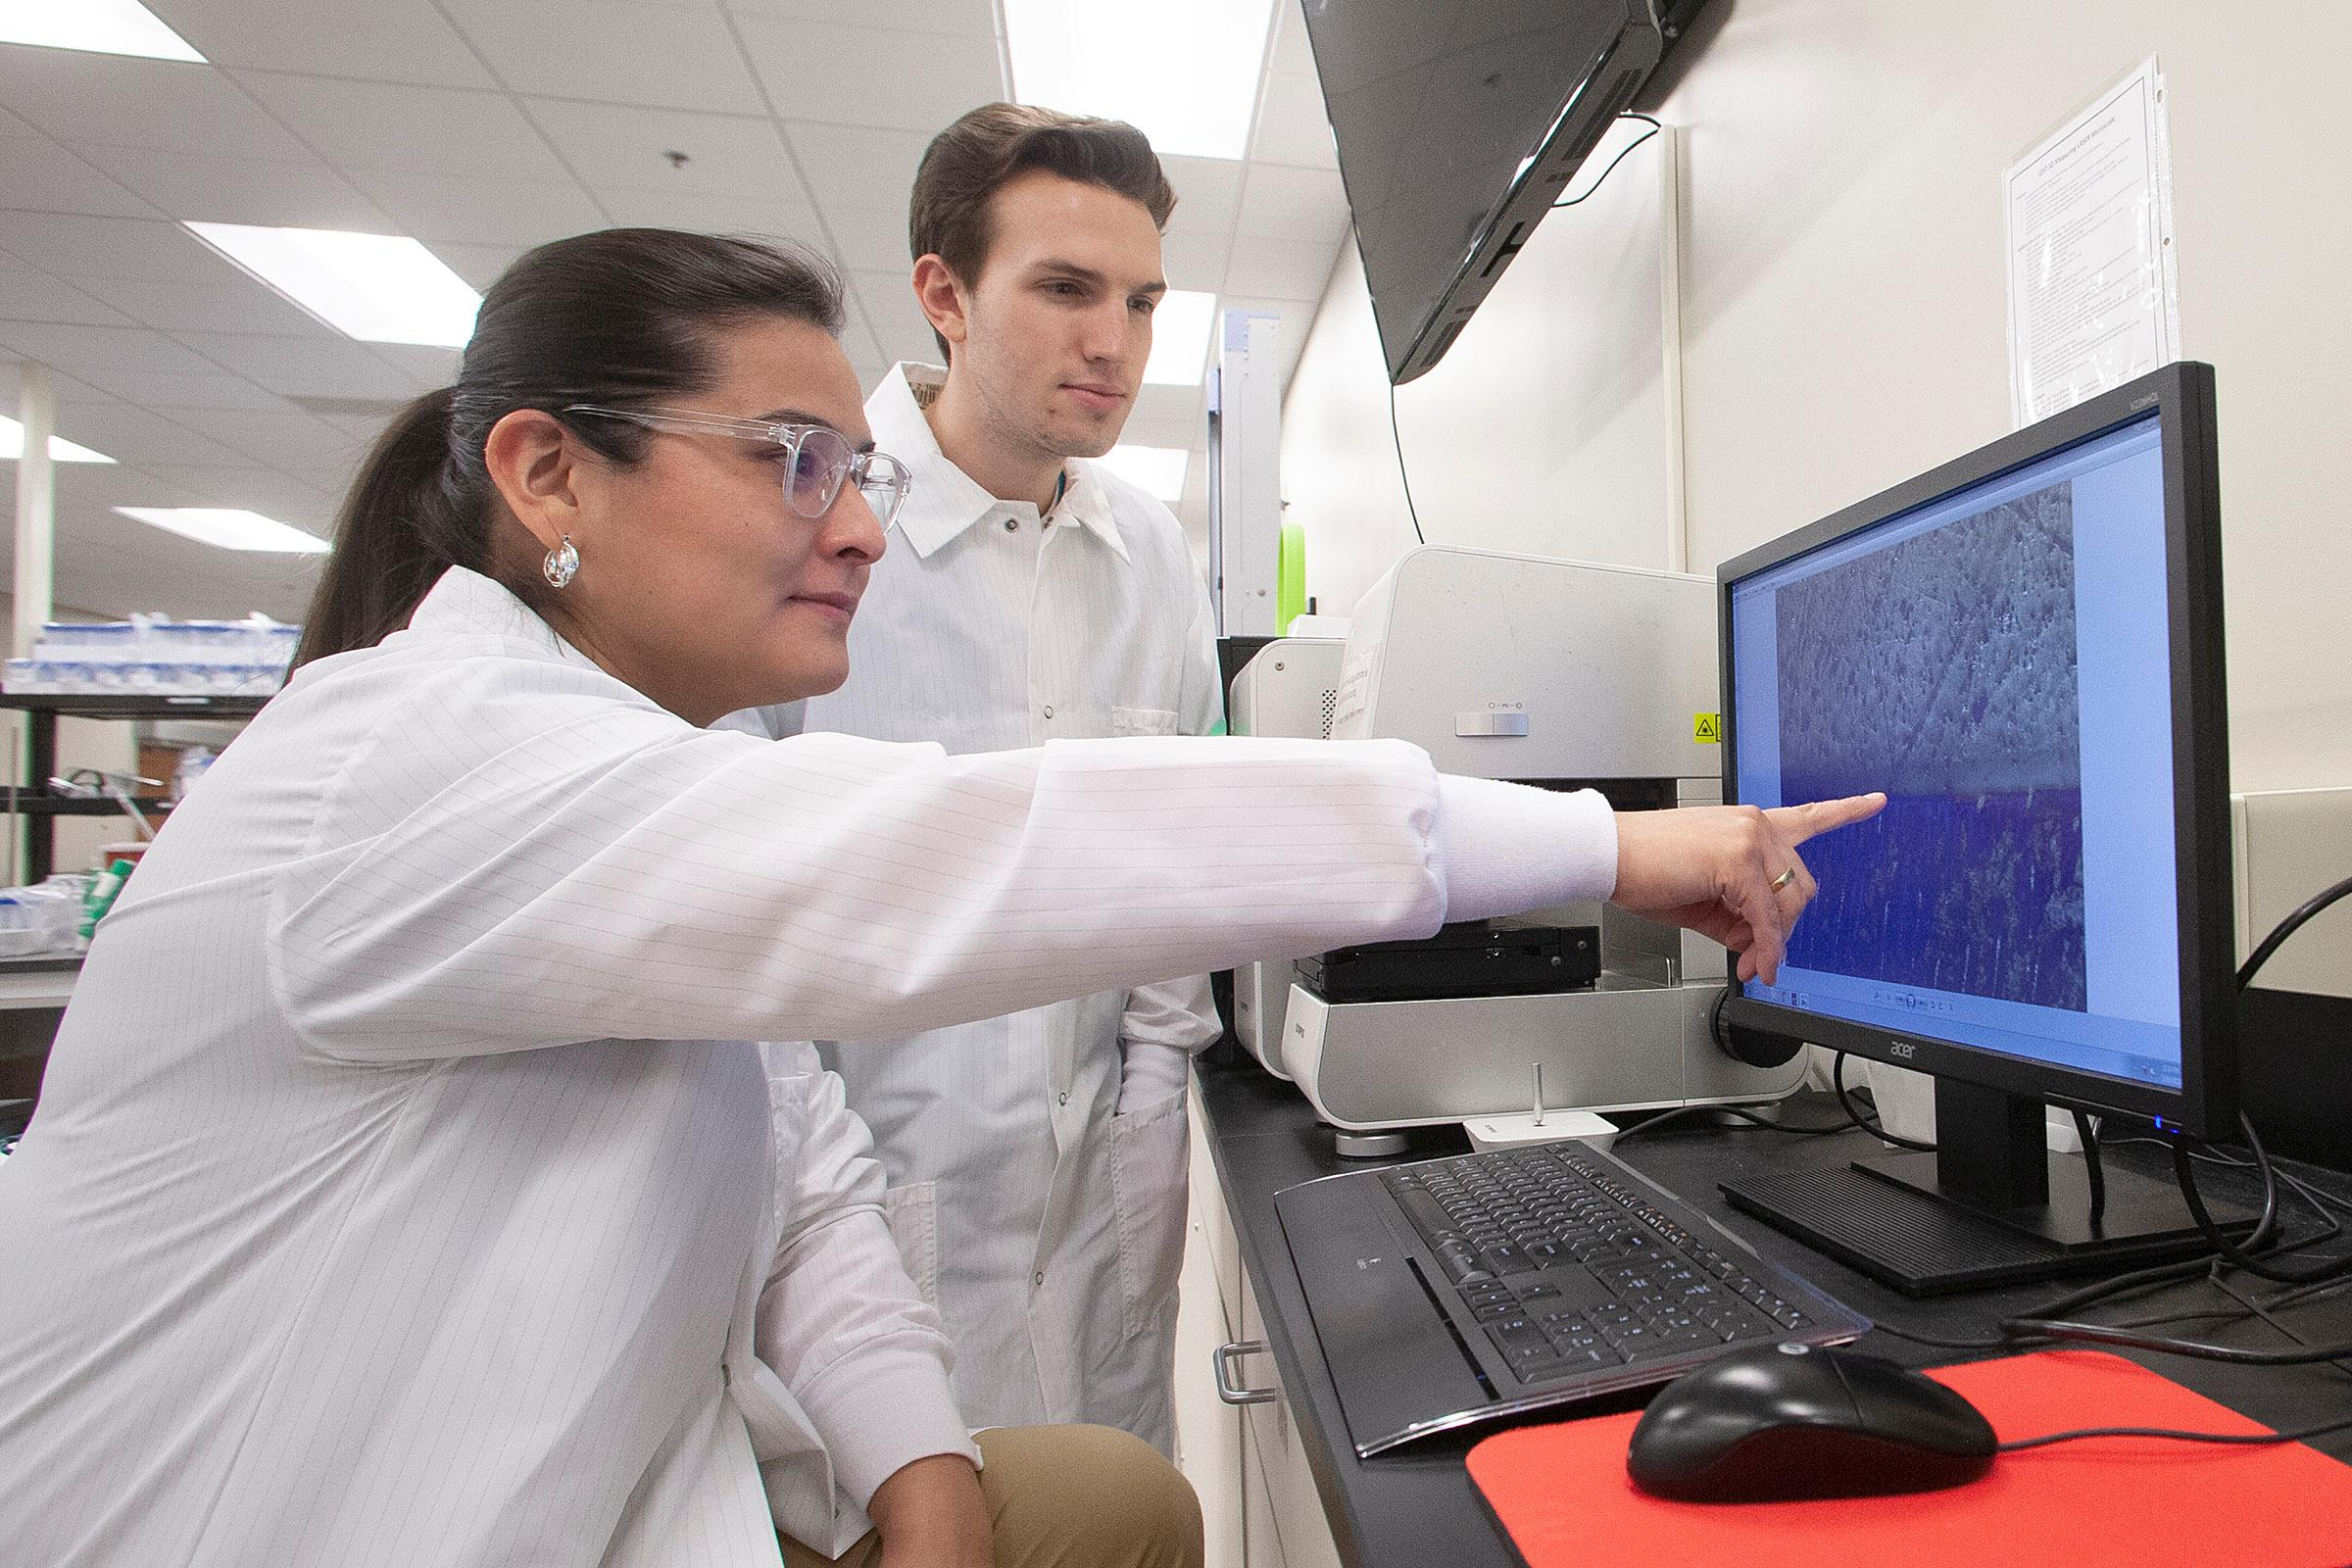 The Bedran-Russo's Lab is focused on enhancing the properties of dentin-resin interfaces